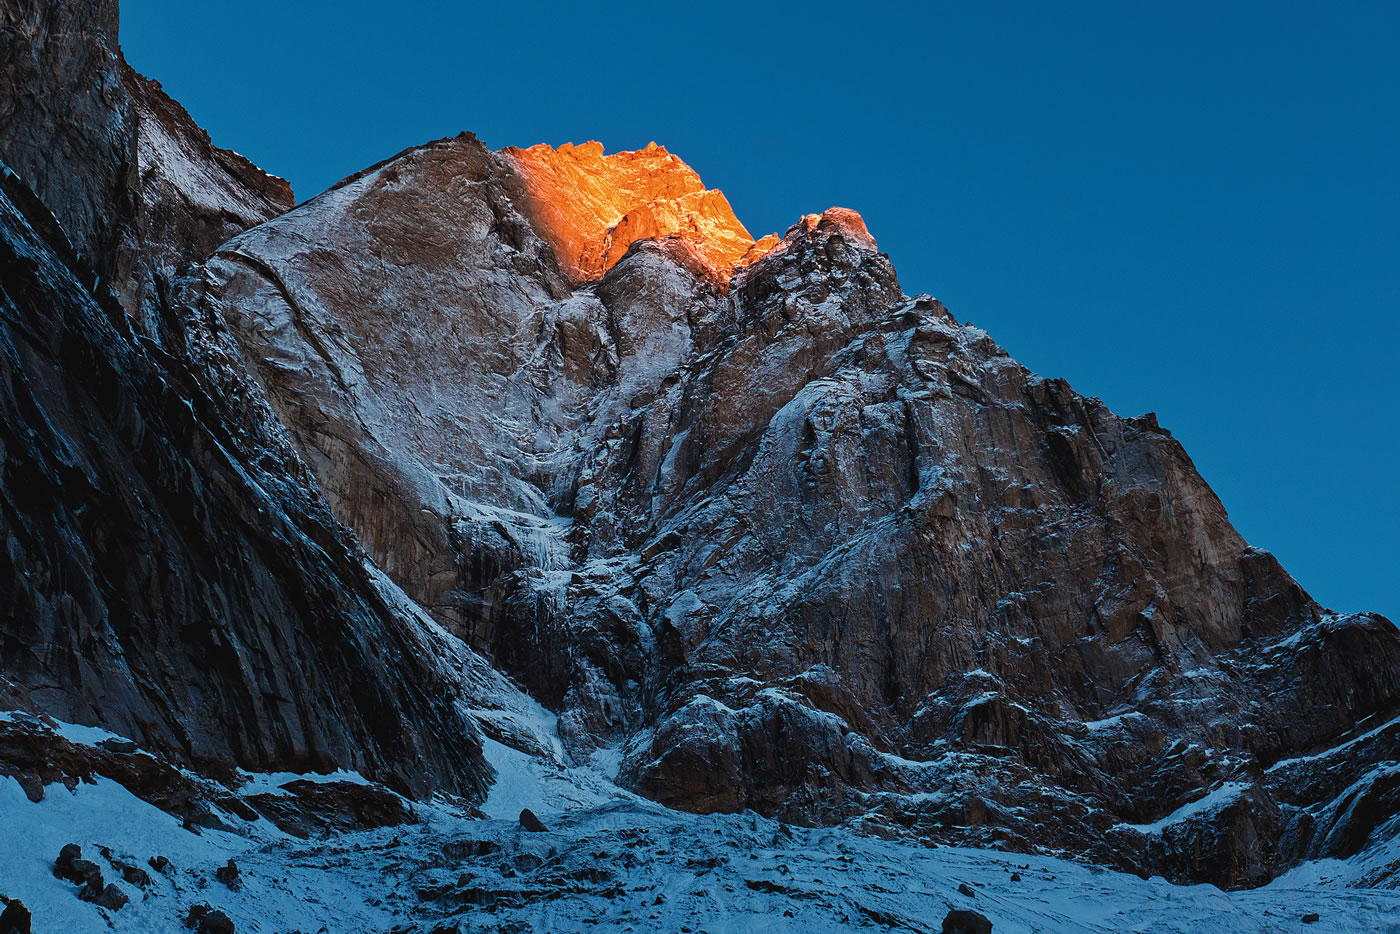 The east face of Cerro Kishtwar gleams in the first morning rays, Day 1. [Photo] Urban Novak